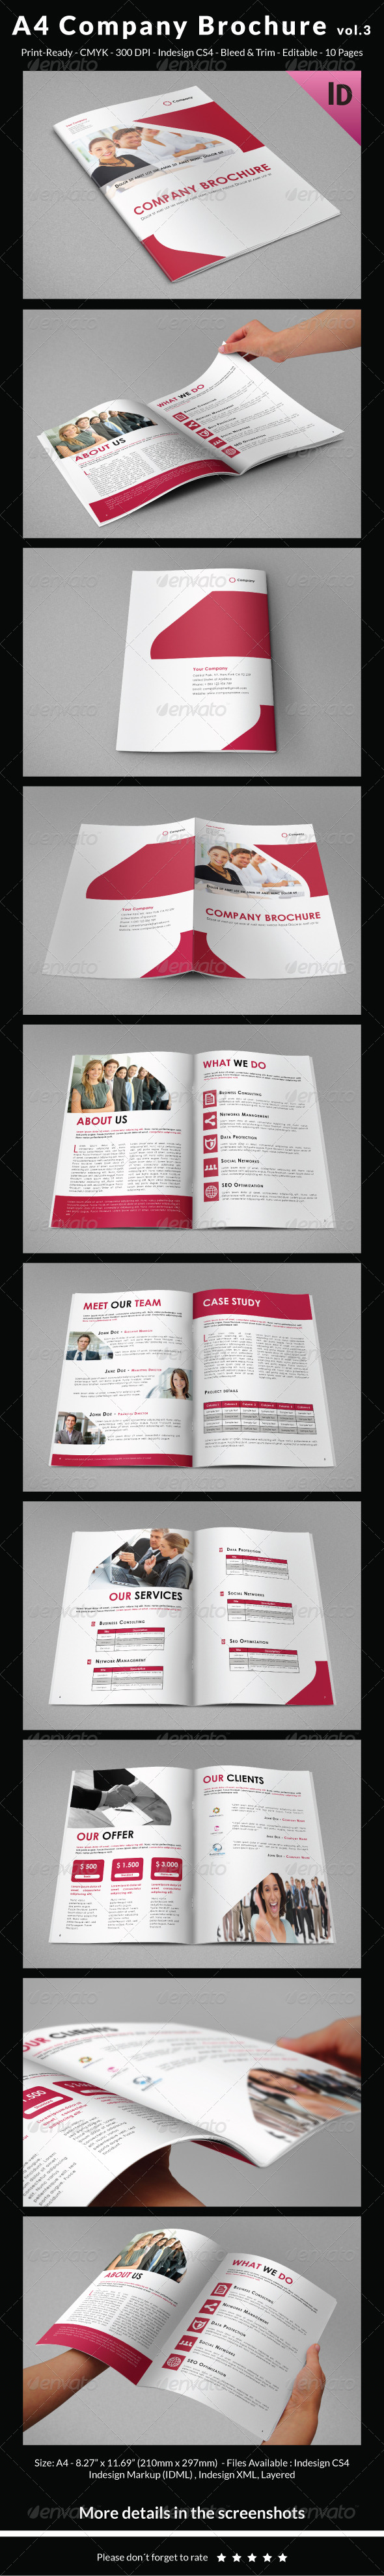 A4 Company Brochure vol.3 - Corporate Brochures